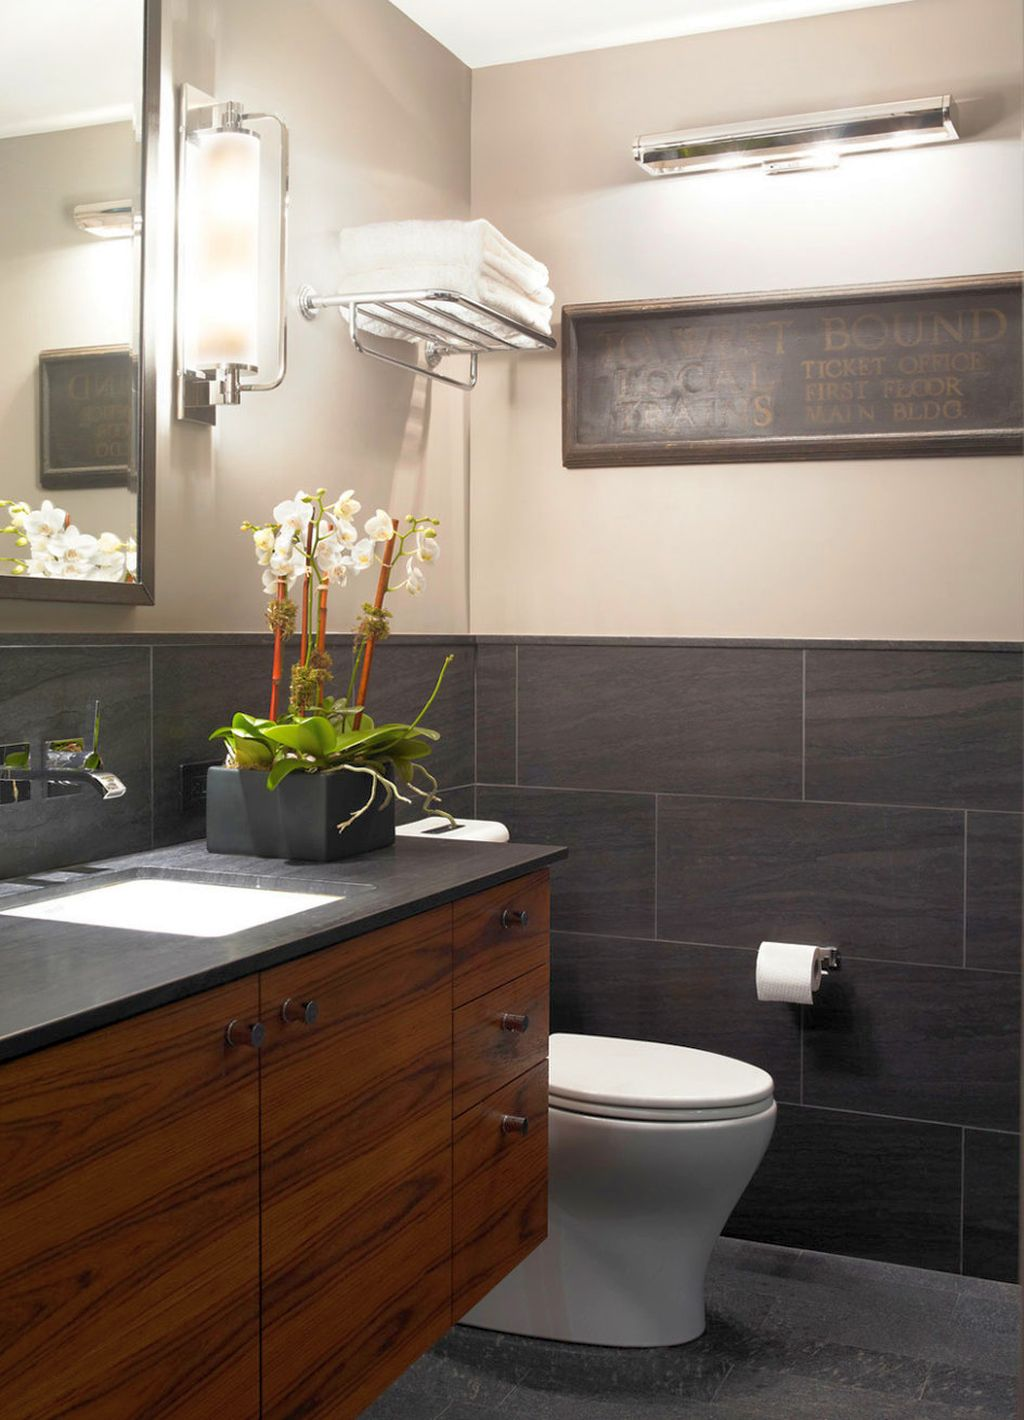 Tiny bathroom design ideas in black and white with rustic for Dark wood bathroom designs